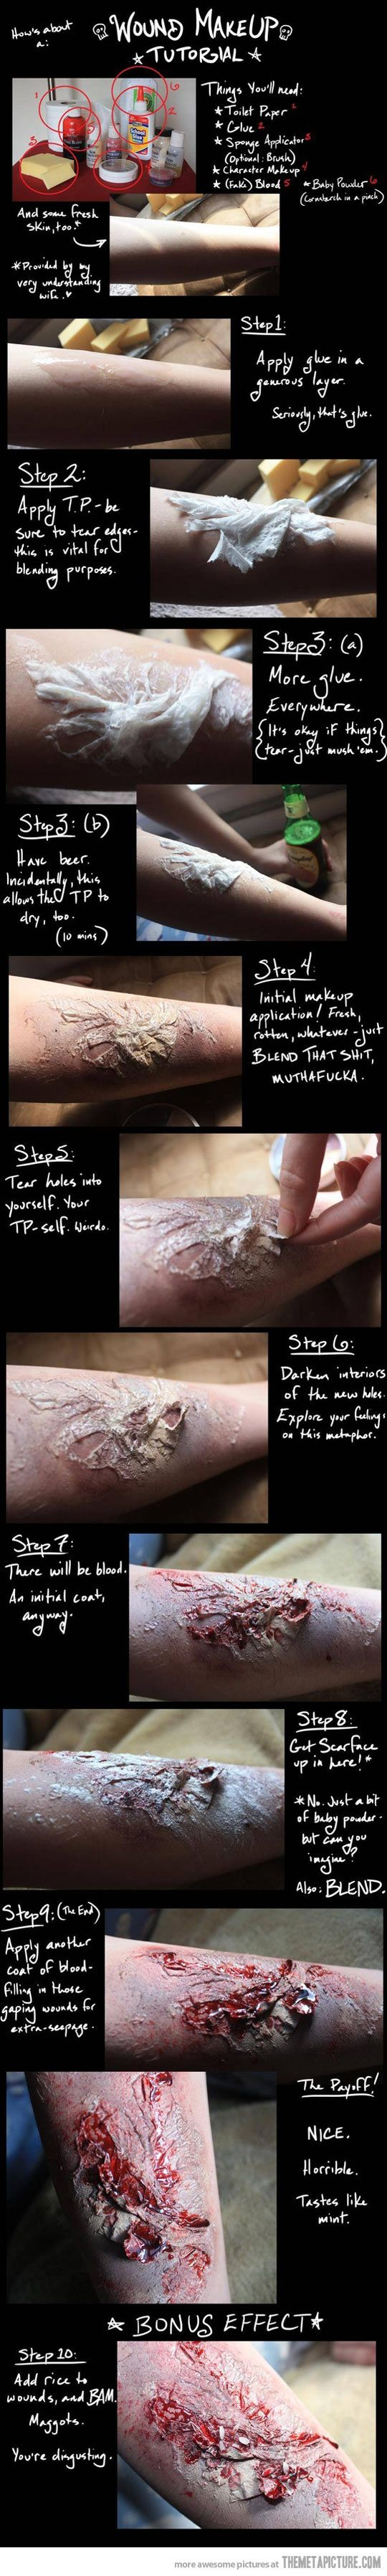 Wound Makeup… (from regular household stuff) great tutorial. (funny, too.)